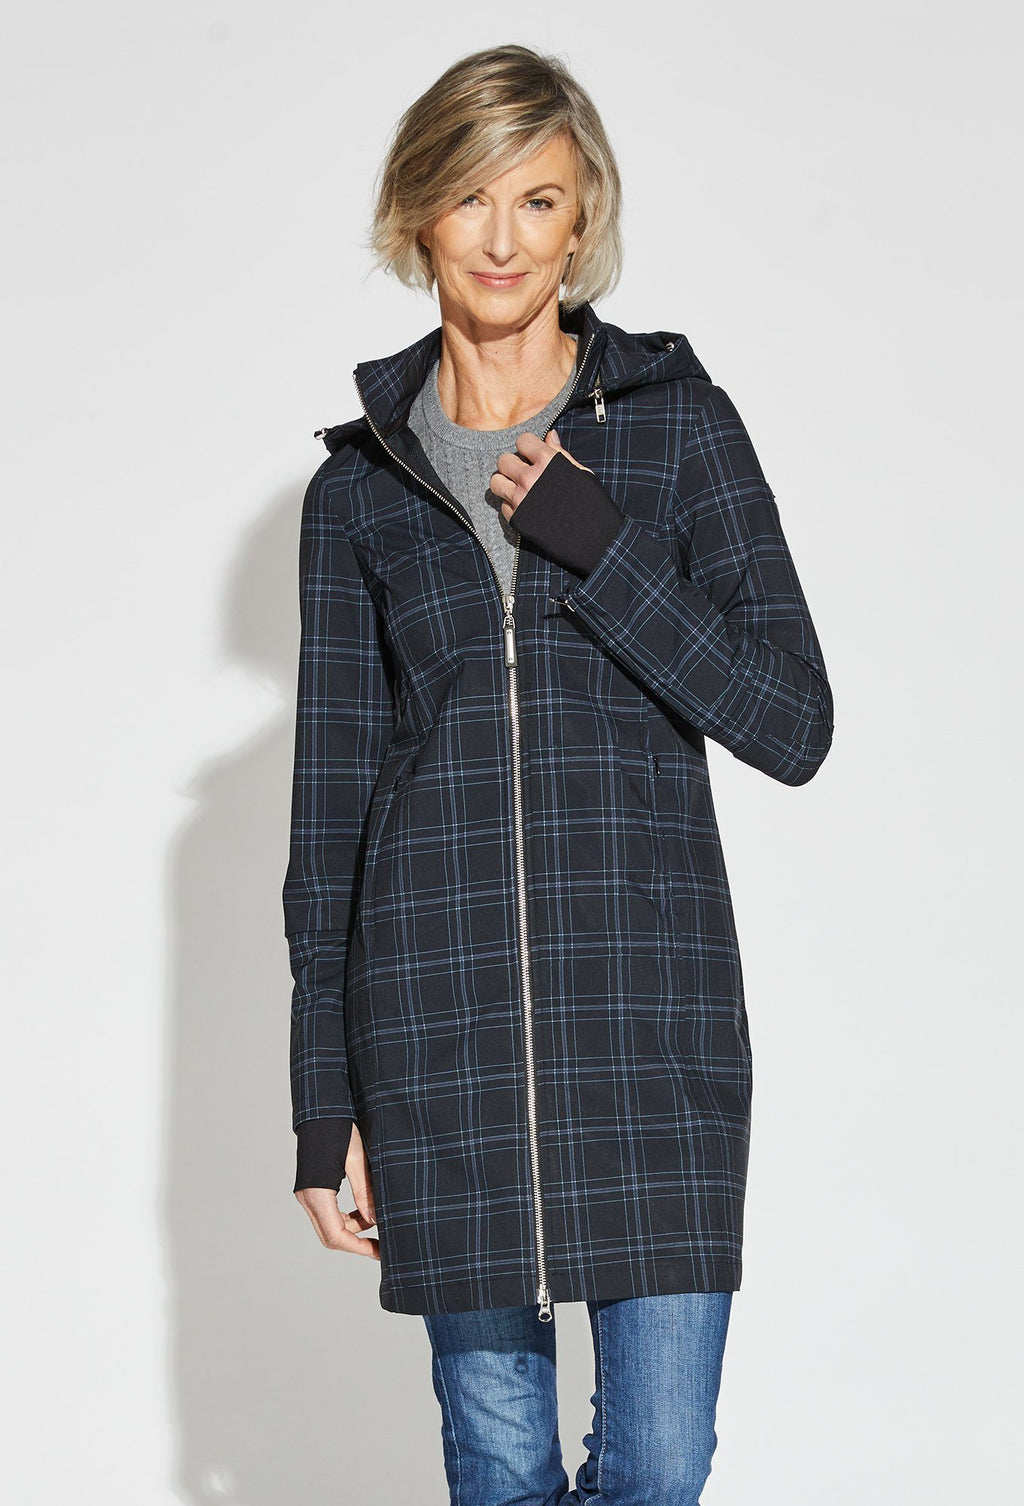 Black/Plaid - Deb is 5'10, dress size 6. Wearing S